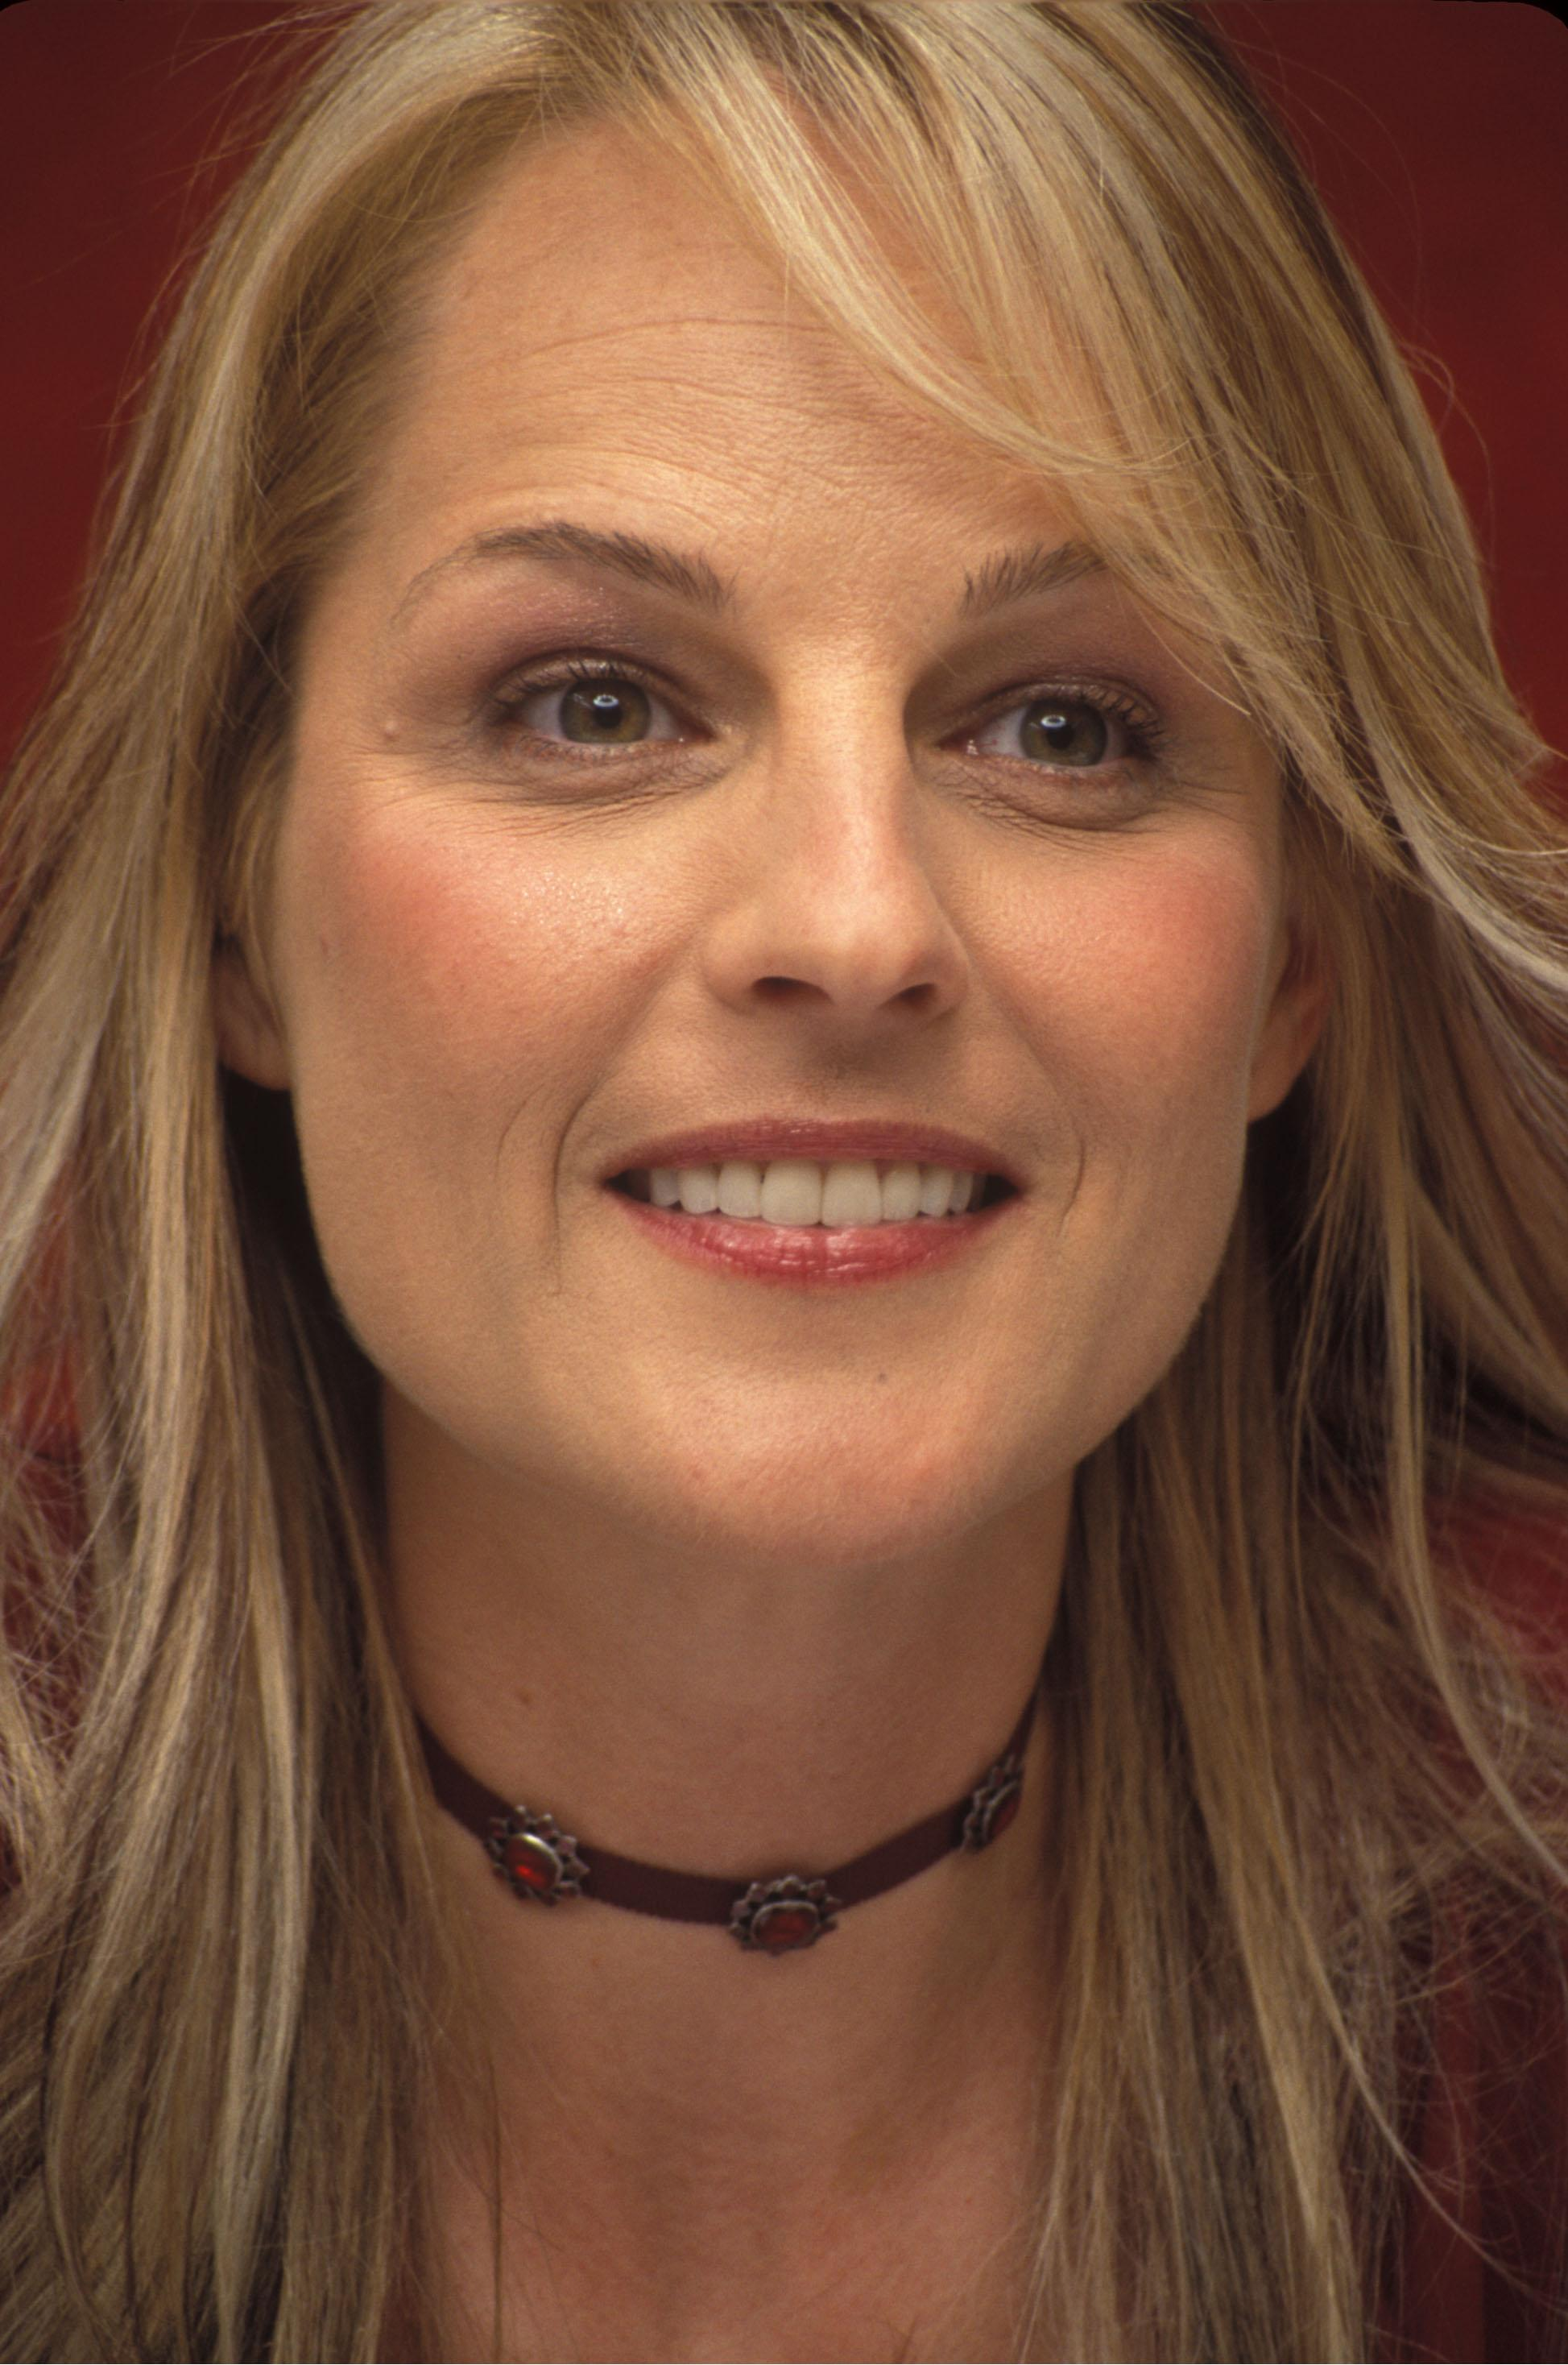 Pictures of Helen Hunt